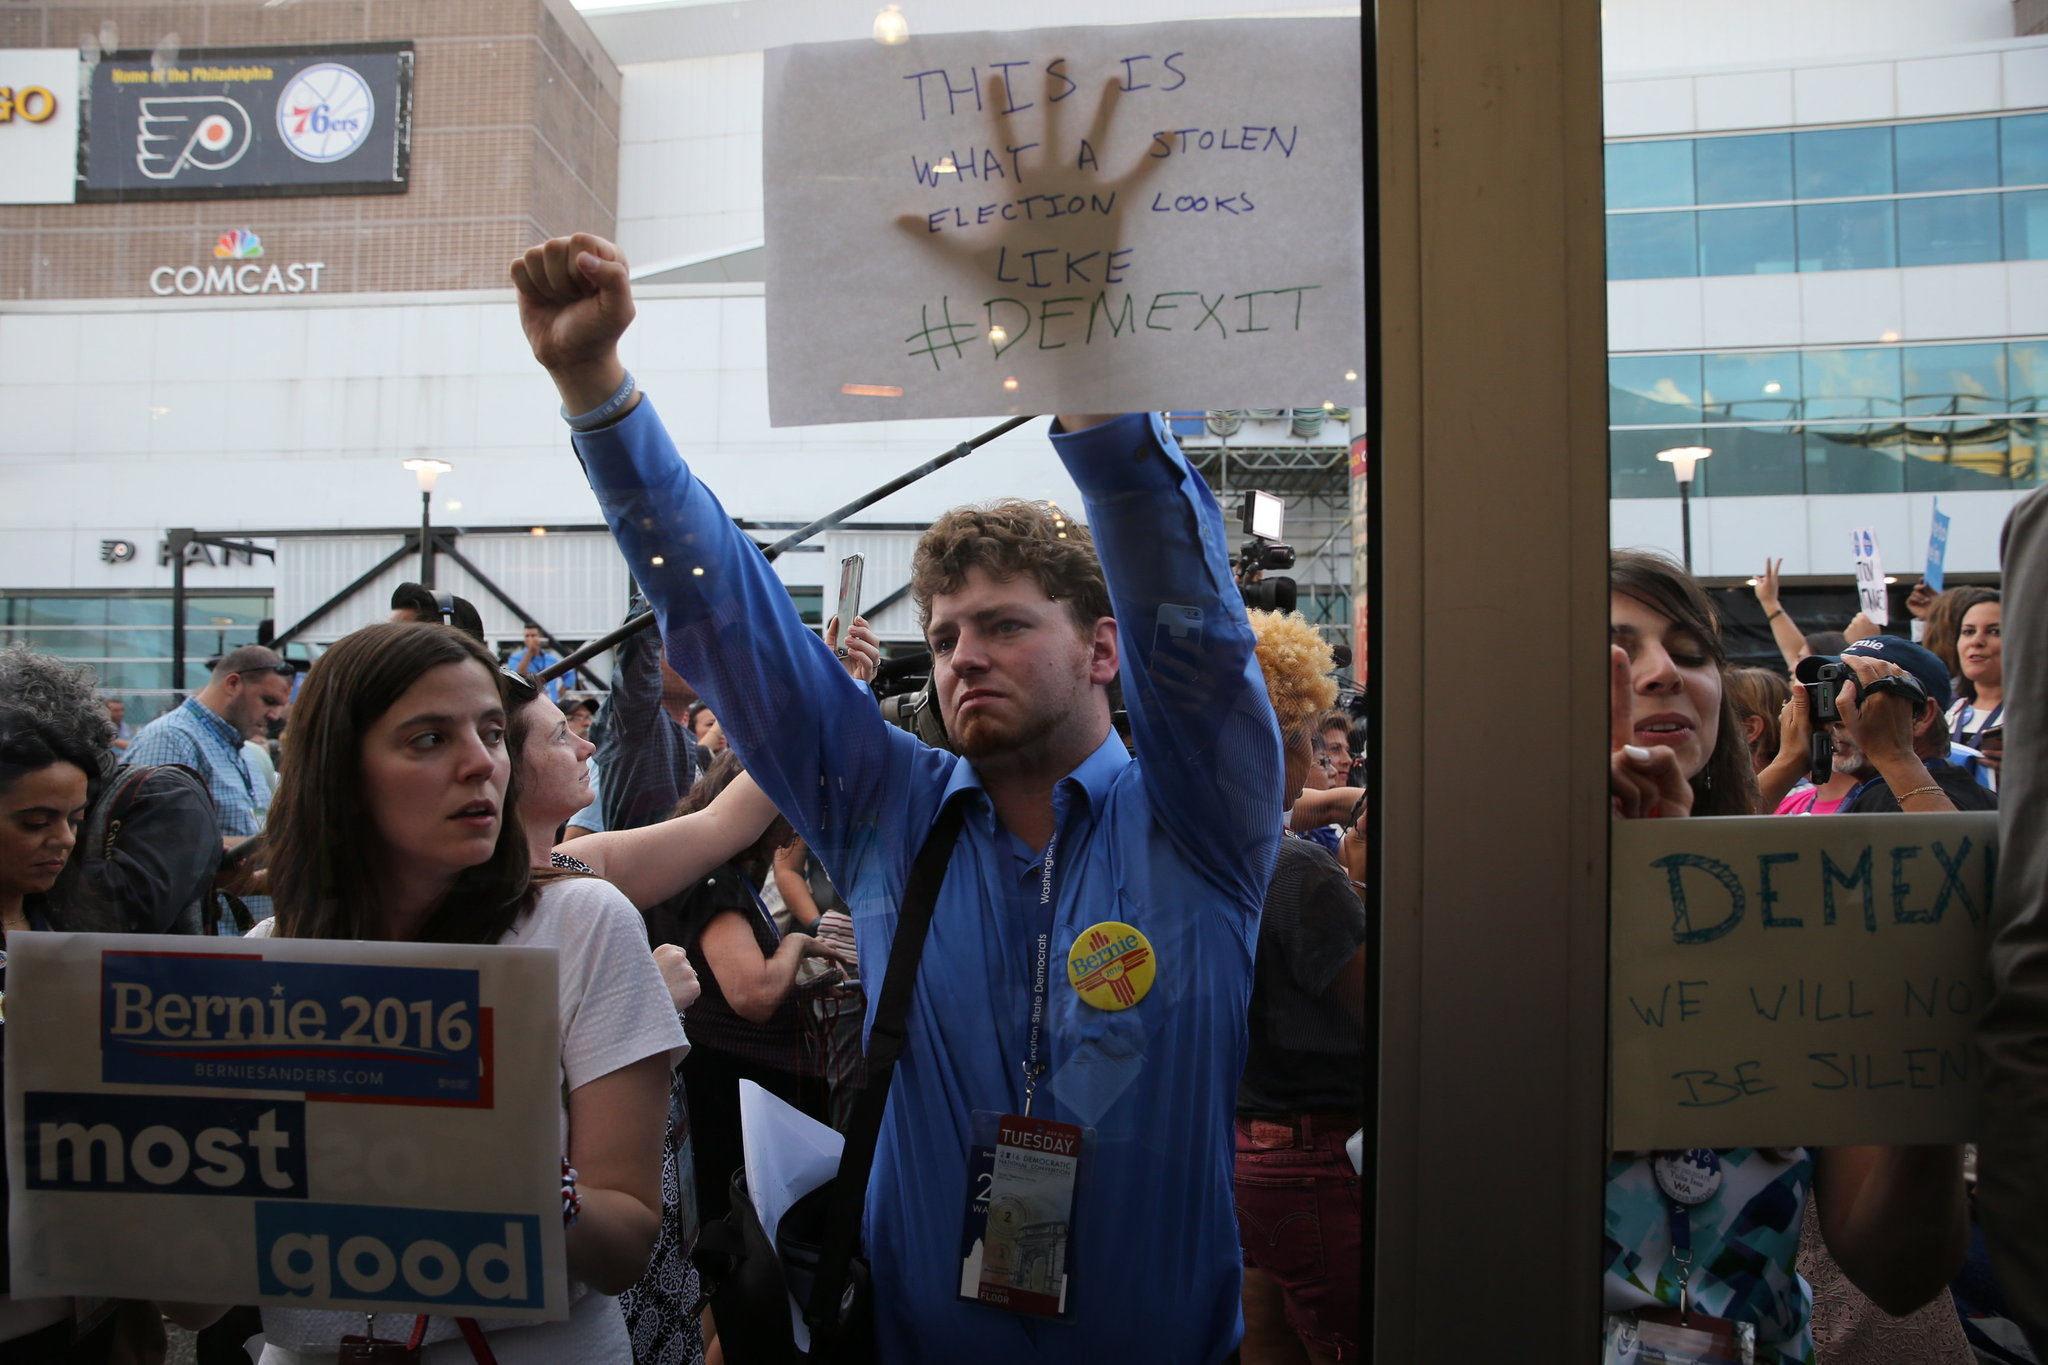 Supporters of Bernie Sanders protest at the 2016 Democratic National Convention. || Ruth Fremson, The New York Times